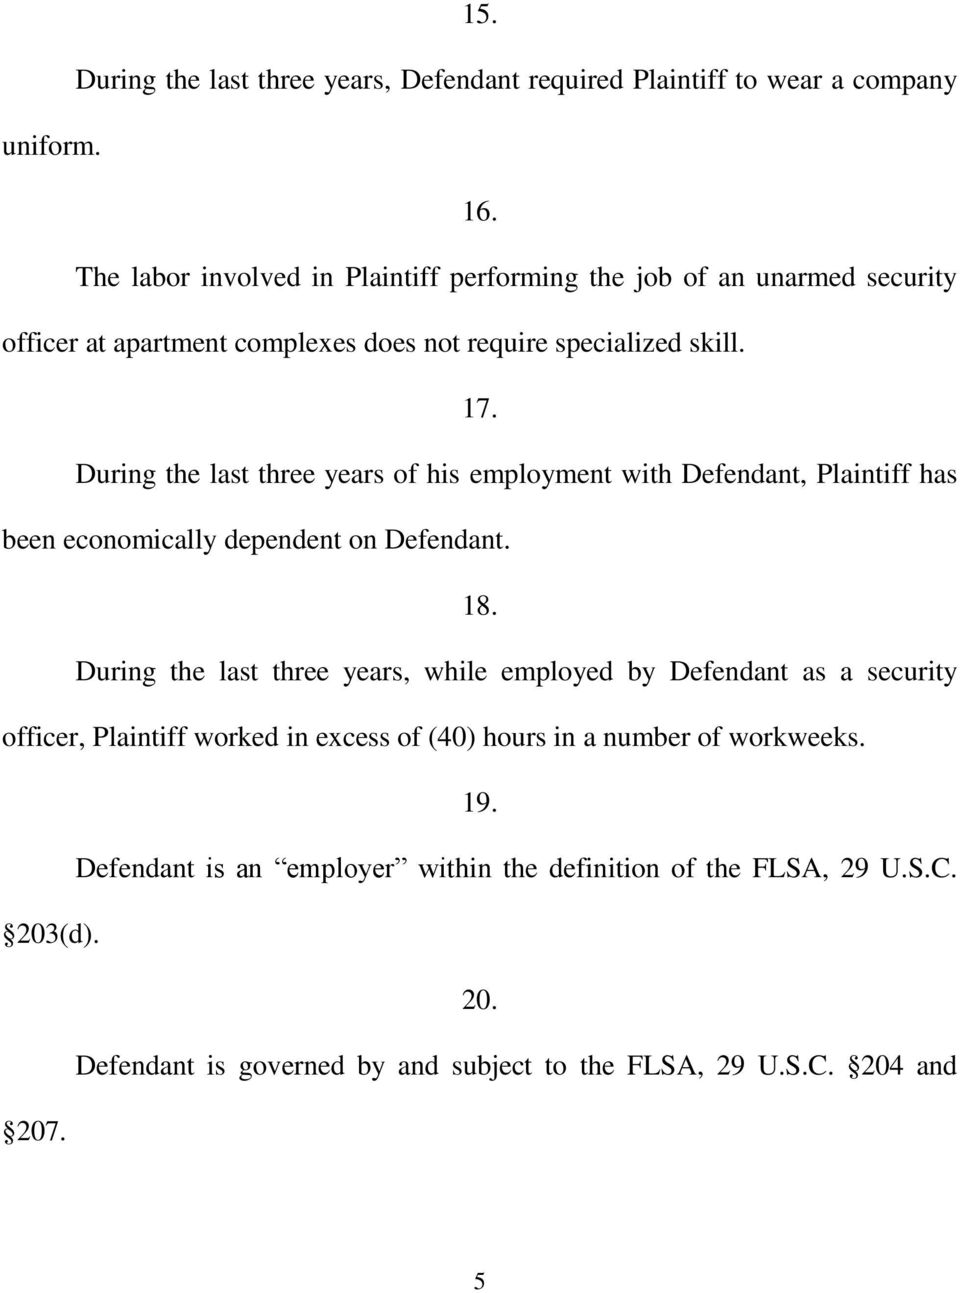 During the last three years of his employment with Defendant, Plaintiff has been economically dependent on Defendant. 18.